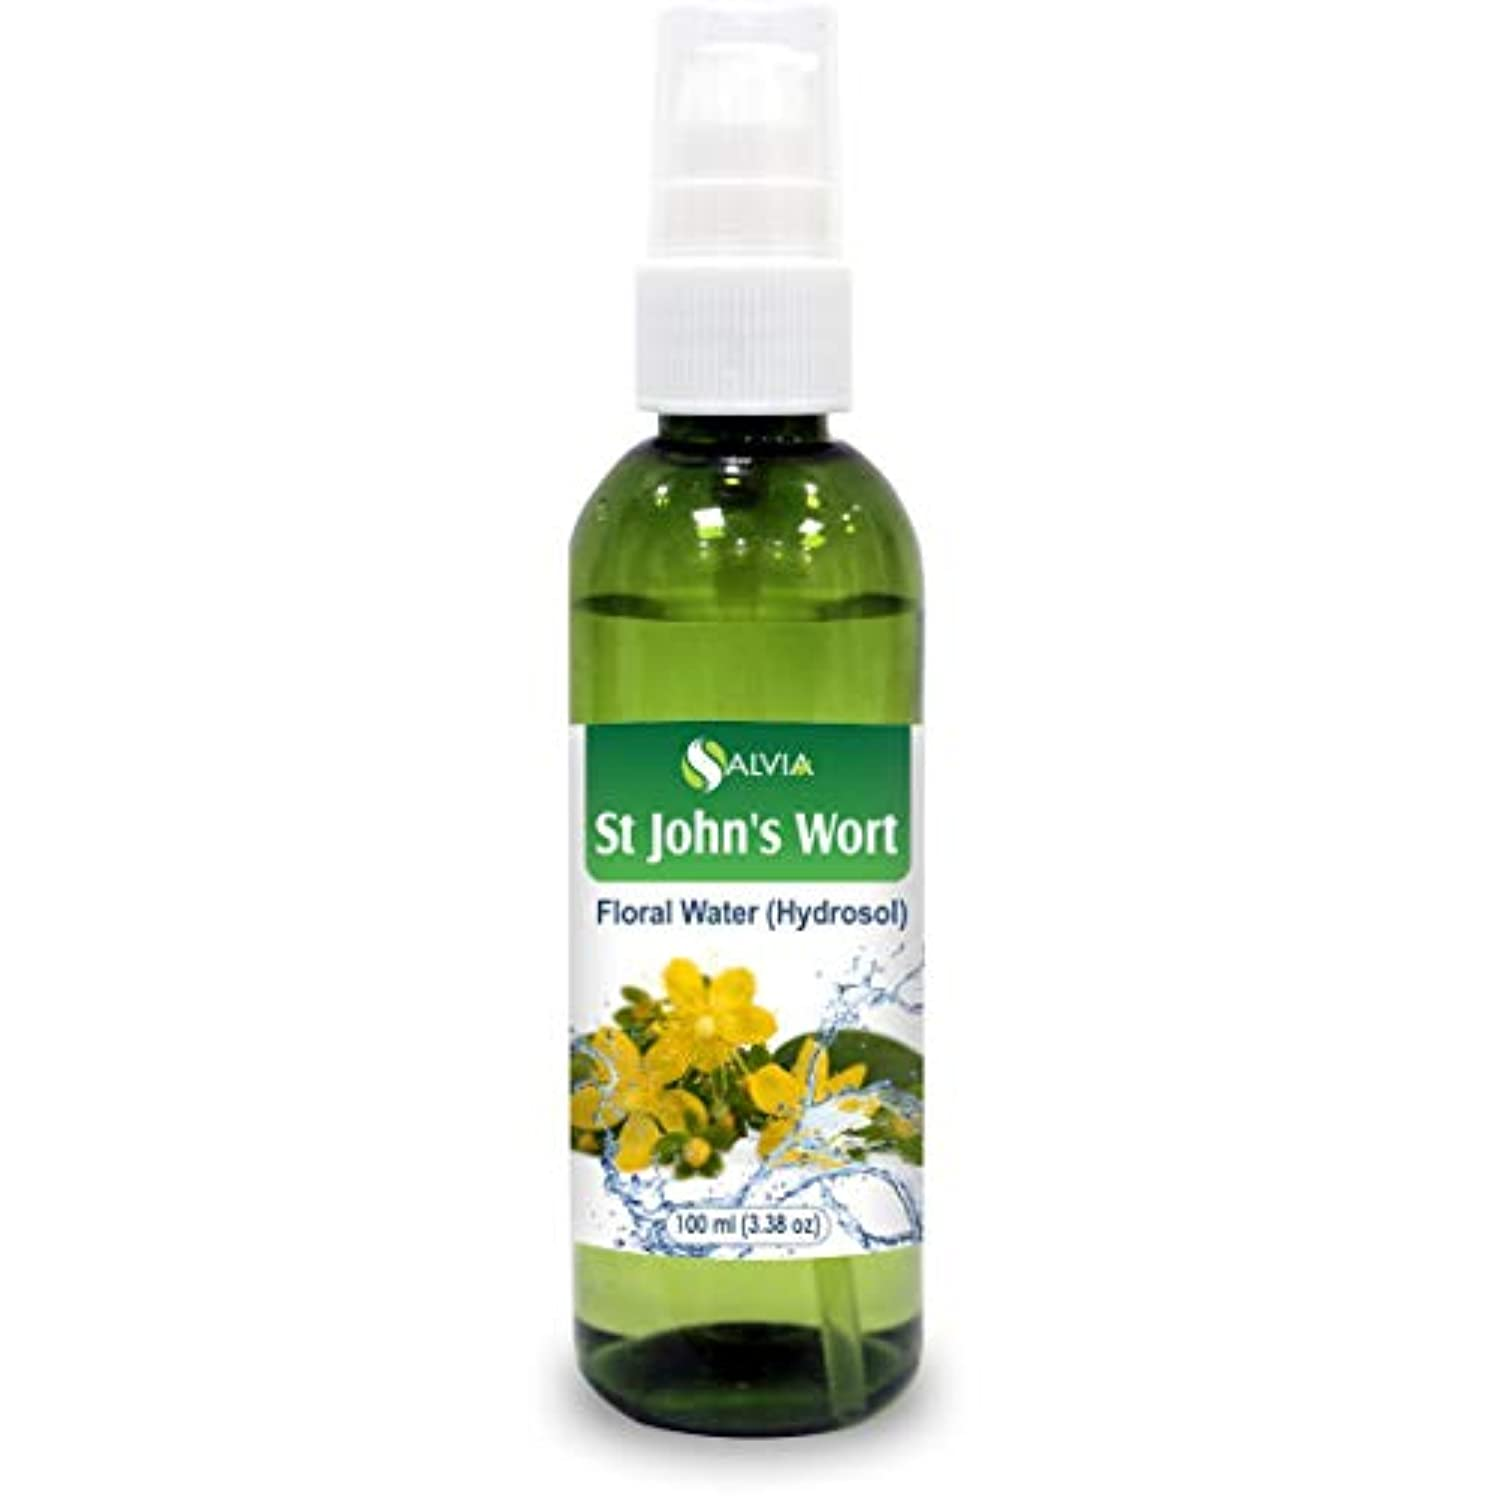 組み込む反乱コミュニケーションSt John's Wort Floral Water 100ml (Hydrosol) 100% Pure And Natural